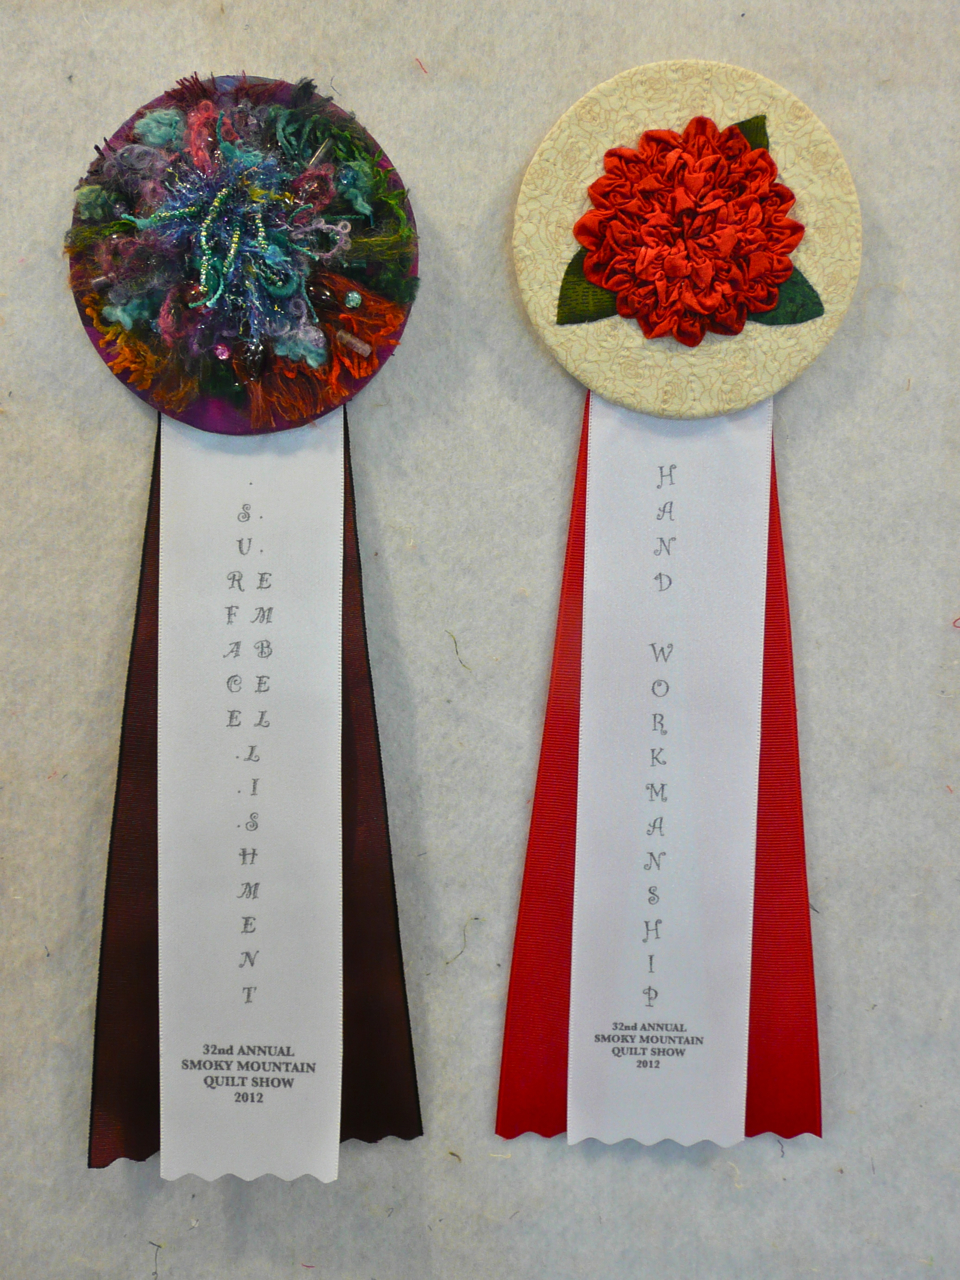 Nellie's Needles: Award Ribbons for SMQ Guild 2012 Show : smoky mountain quilt show - Adamdwight.com